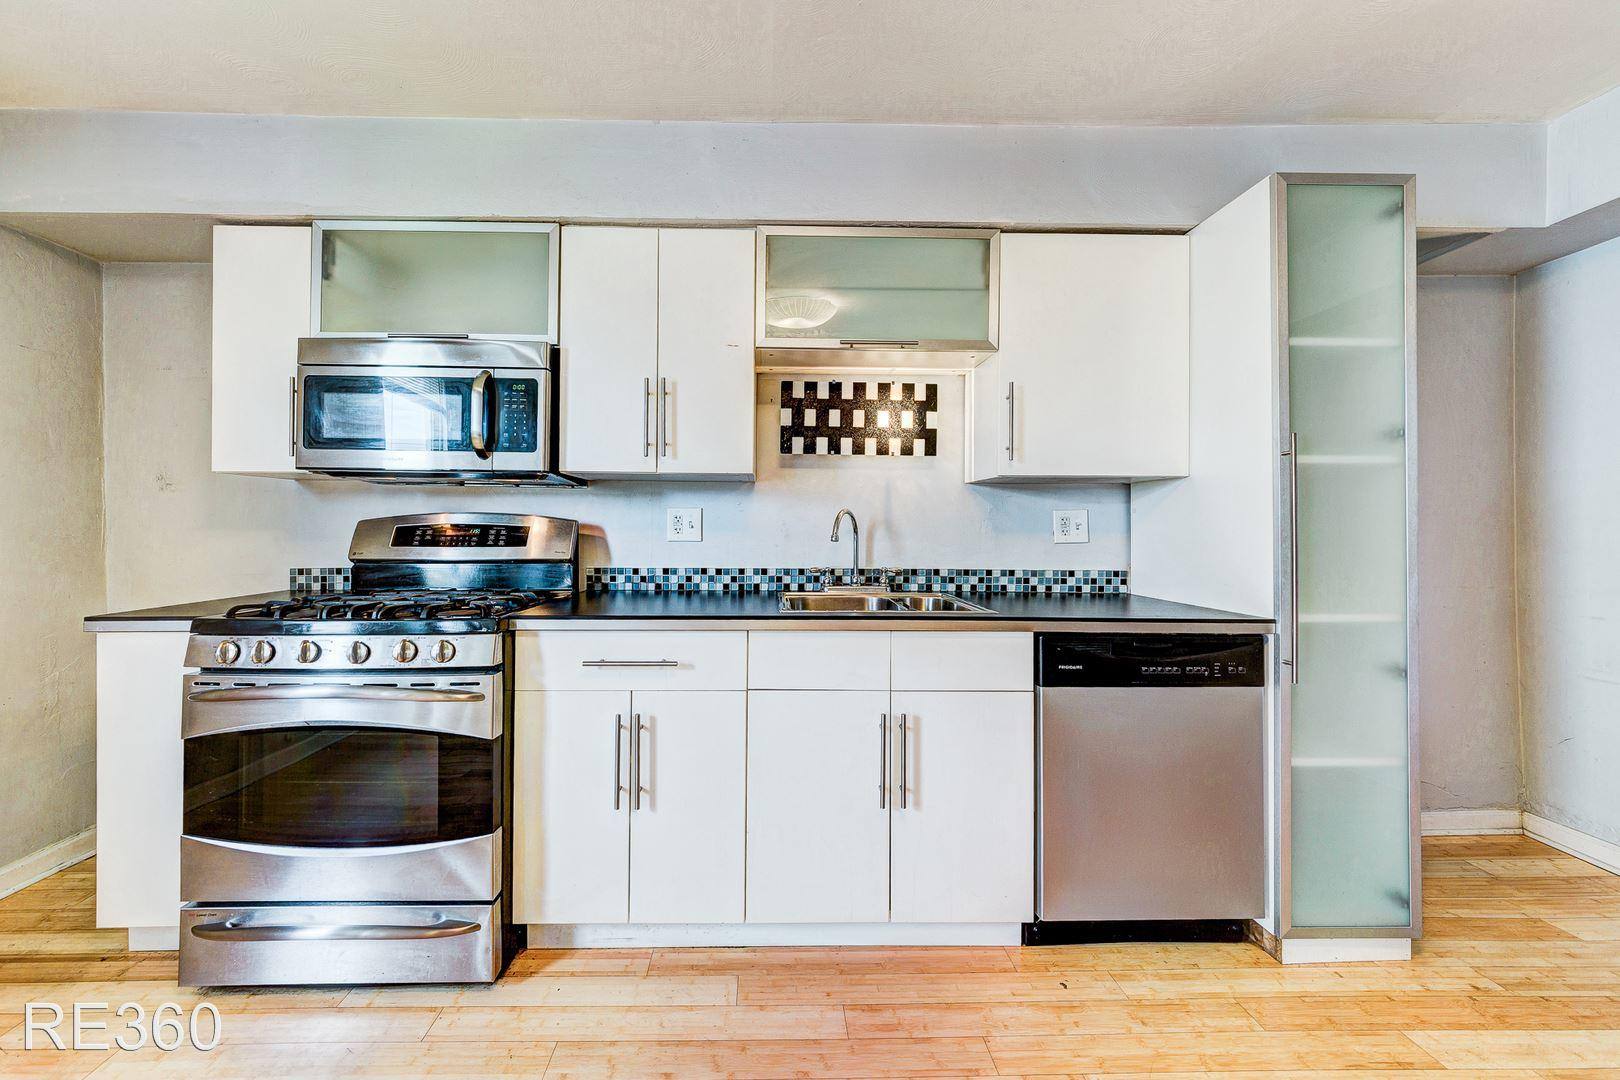 184 Pius St For Rent - Pittsburgh, PA | Trulia